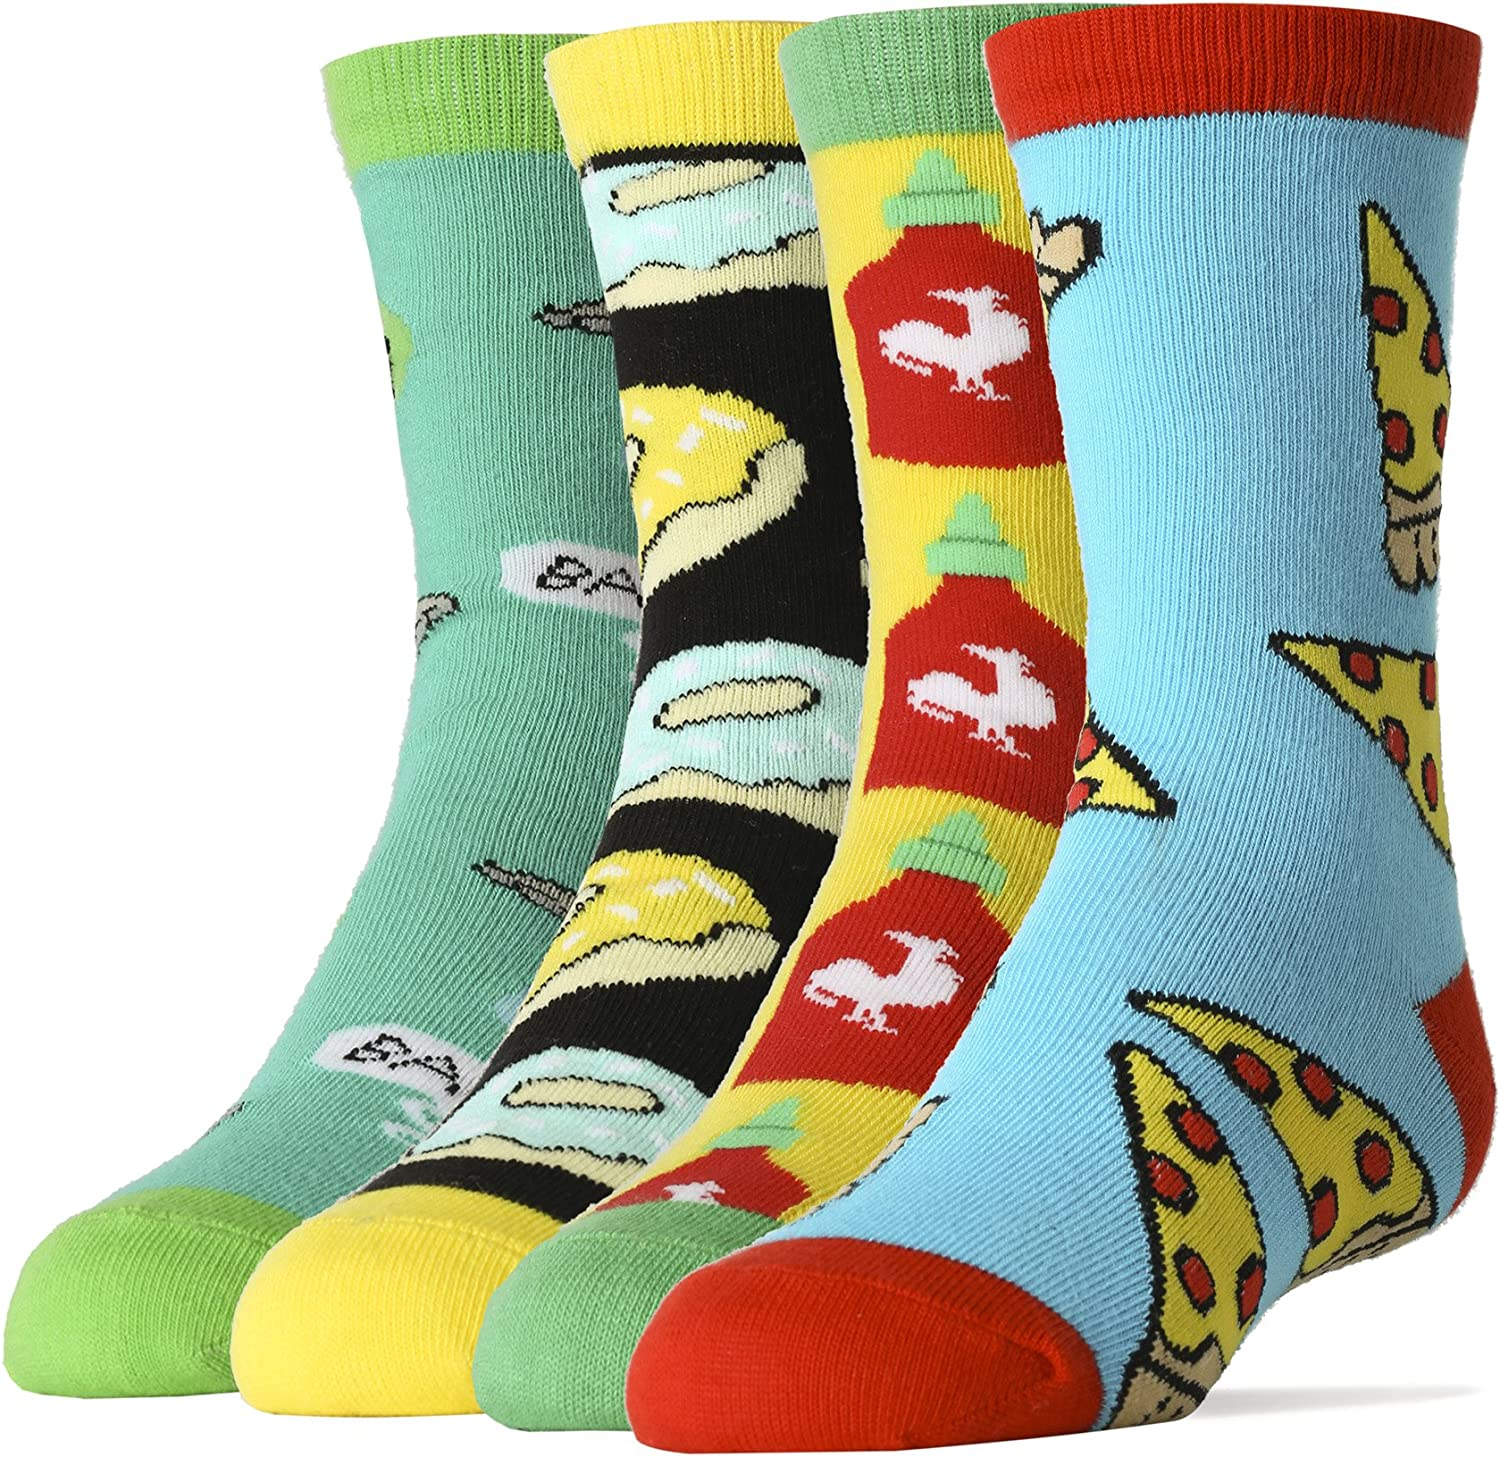 Comedy And Tragedy Masks Unisex Funny Casual Crew Socks Athletic Socks For Boys Girls Kids Teenagers